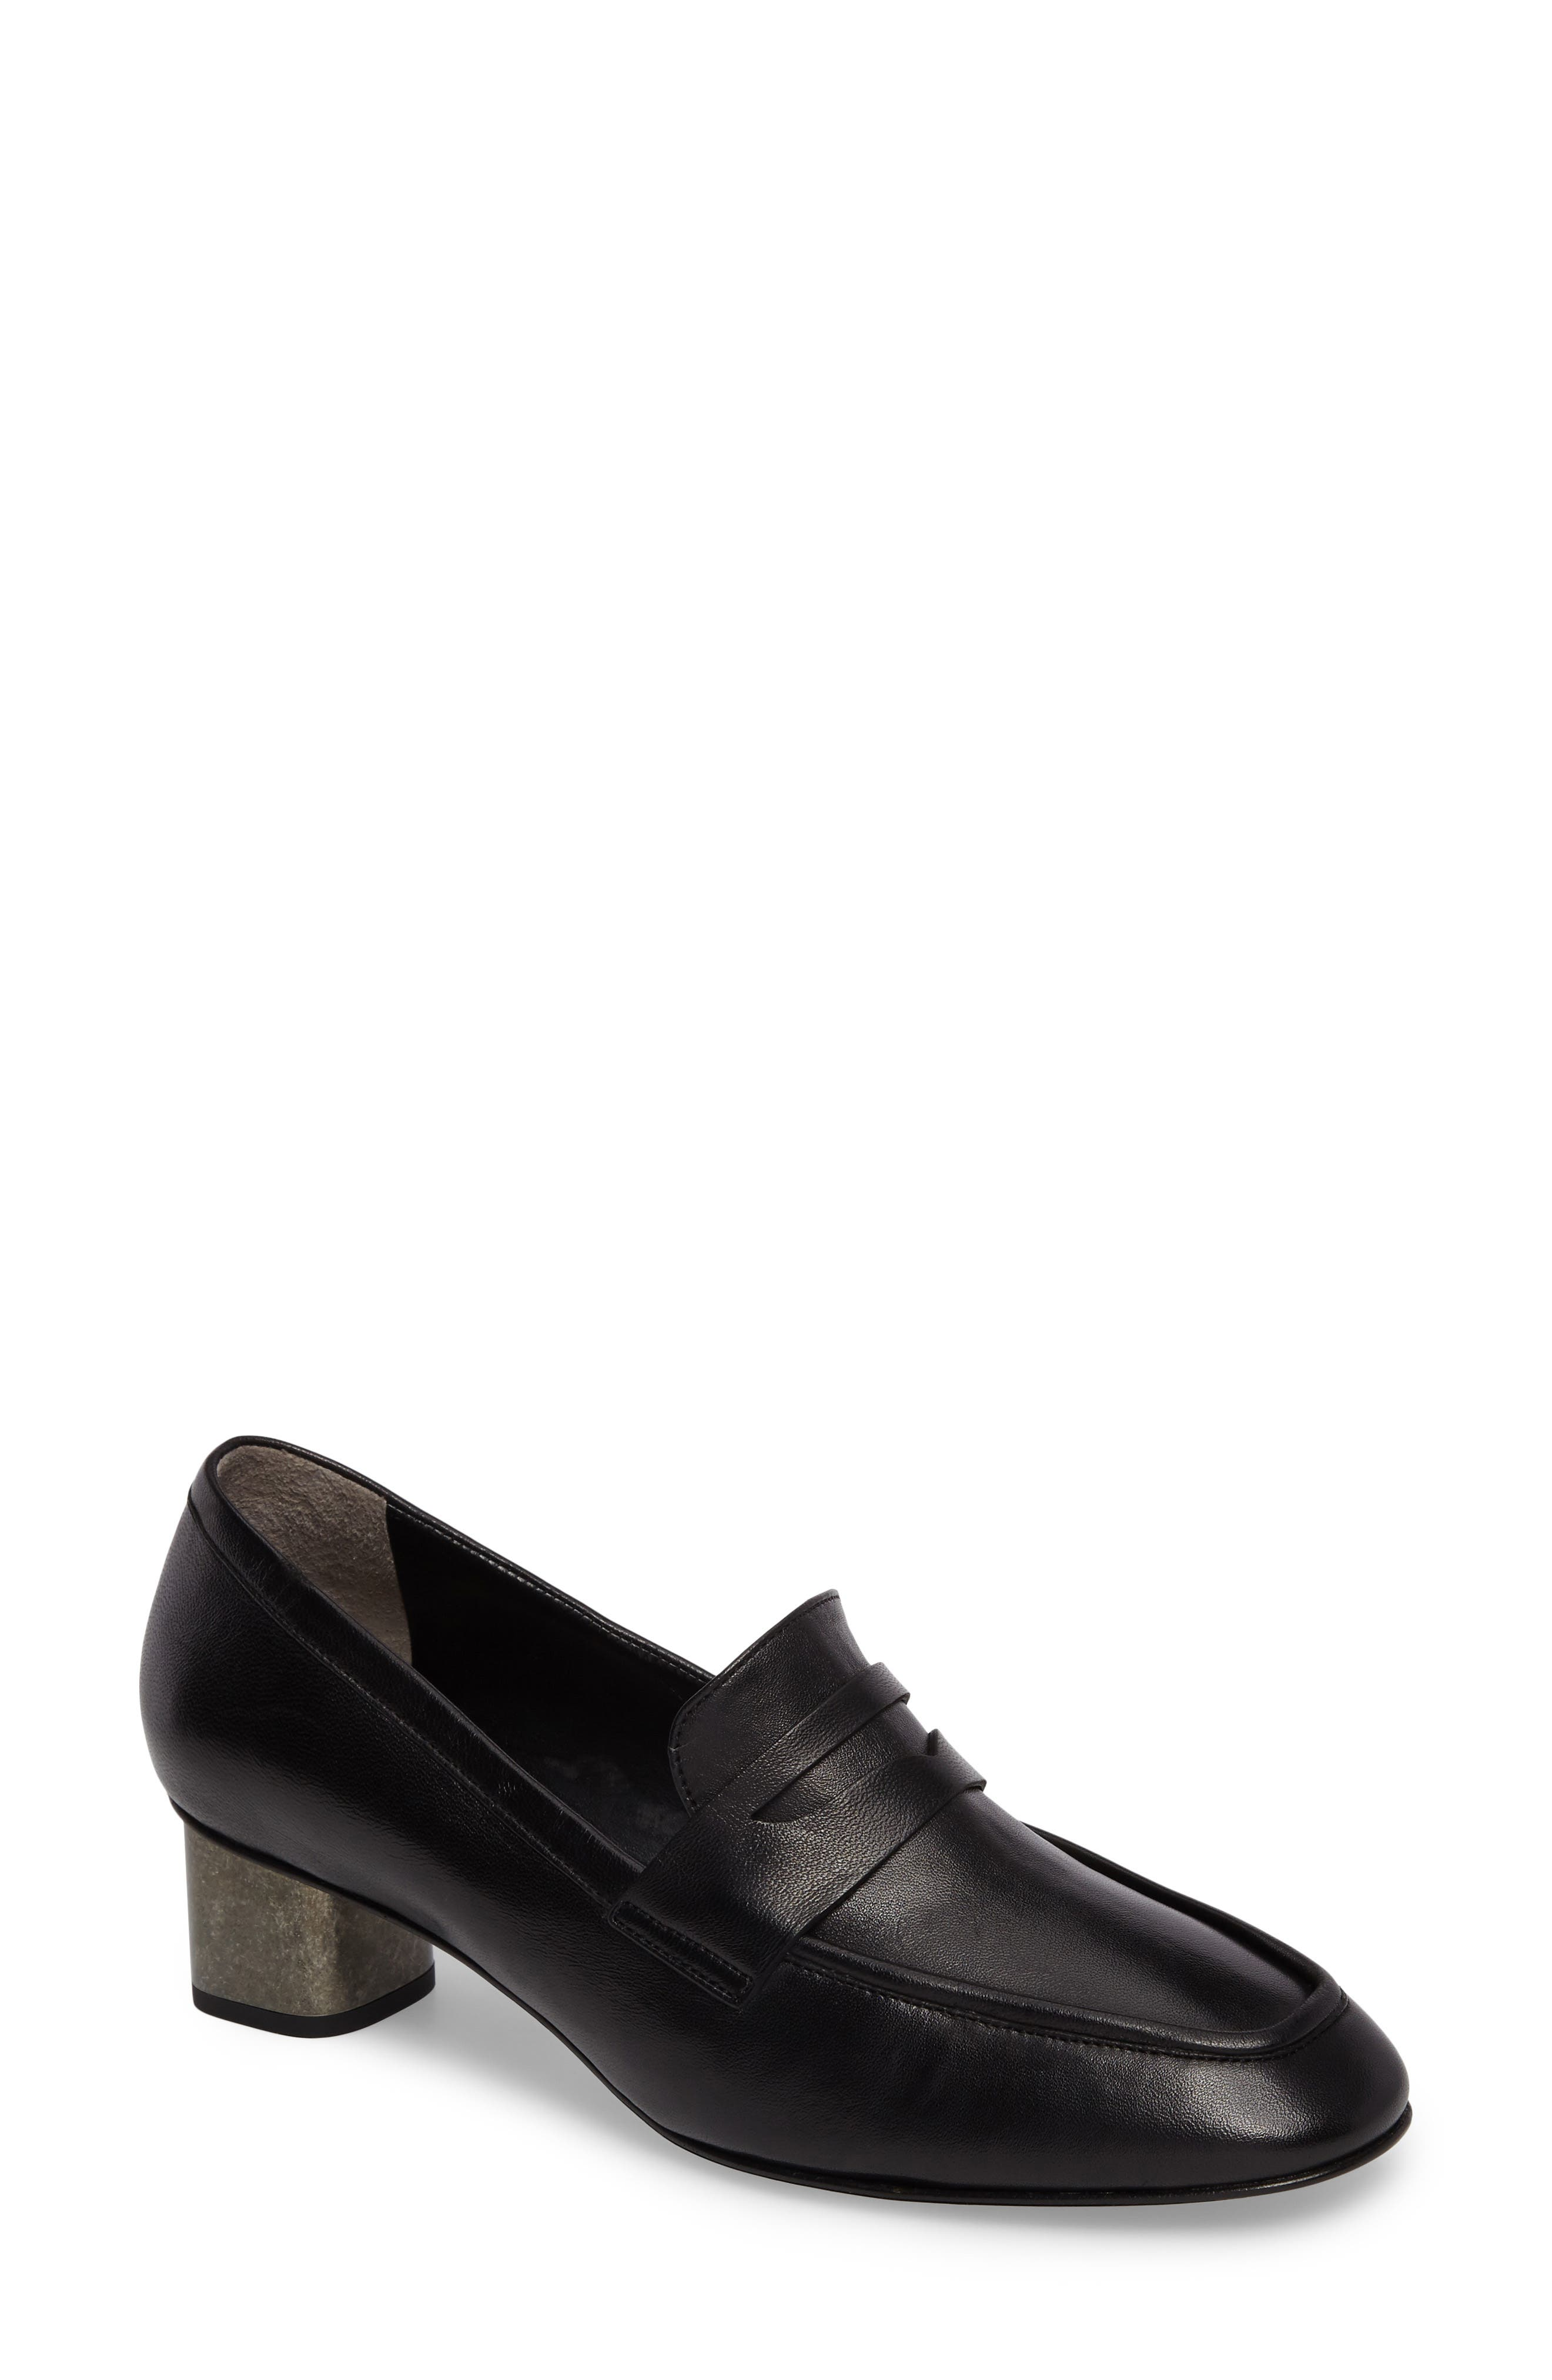 Alternate Image 1 Selected - Robert Clergerie Povia Loafer Pump (Women)